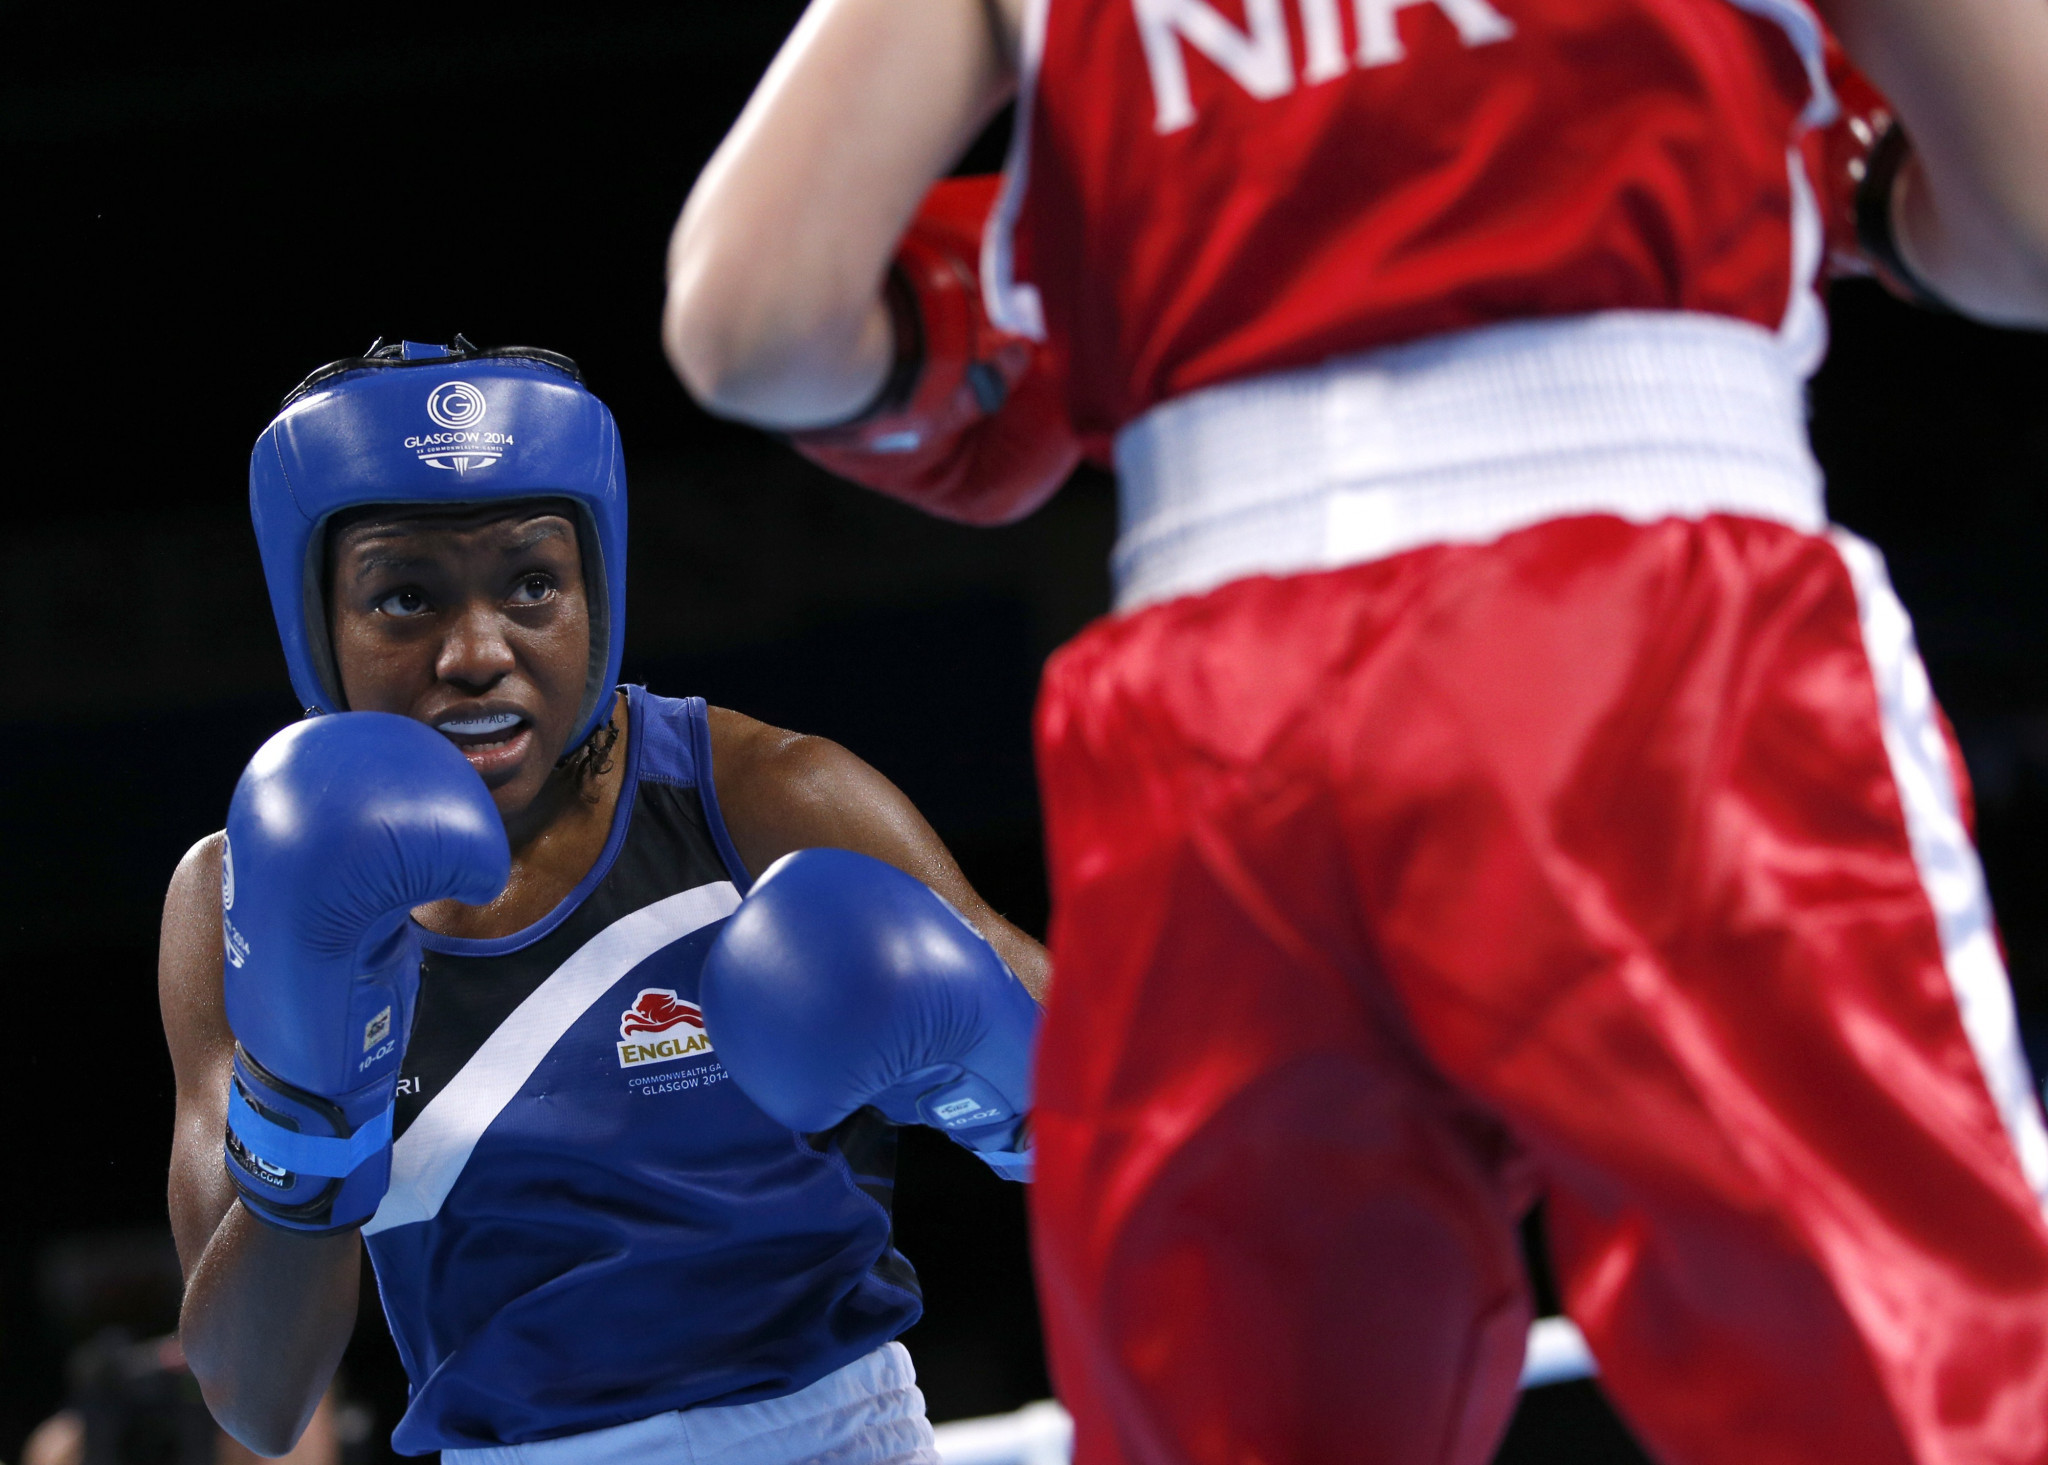 The presence of Nicola Adams at the Commonwealth Games ensured the event was high-profile following her Olympic triumph at London 2012 ©Getty Images